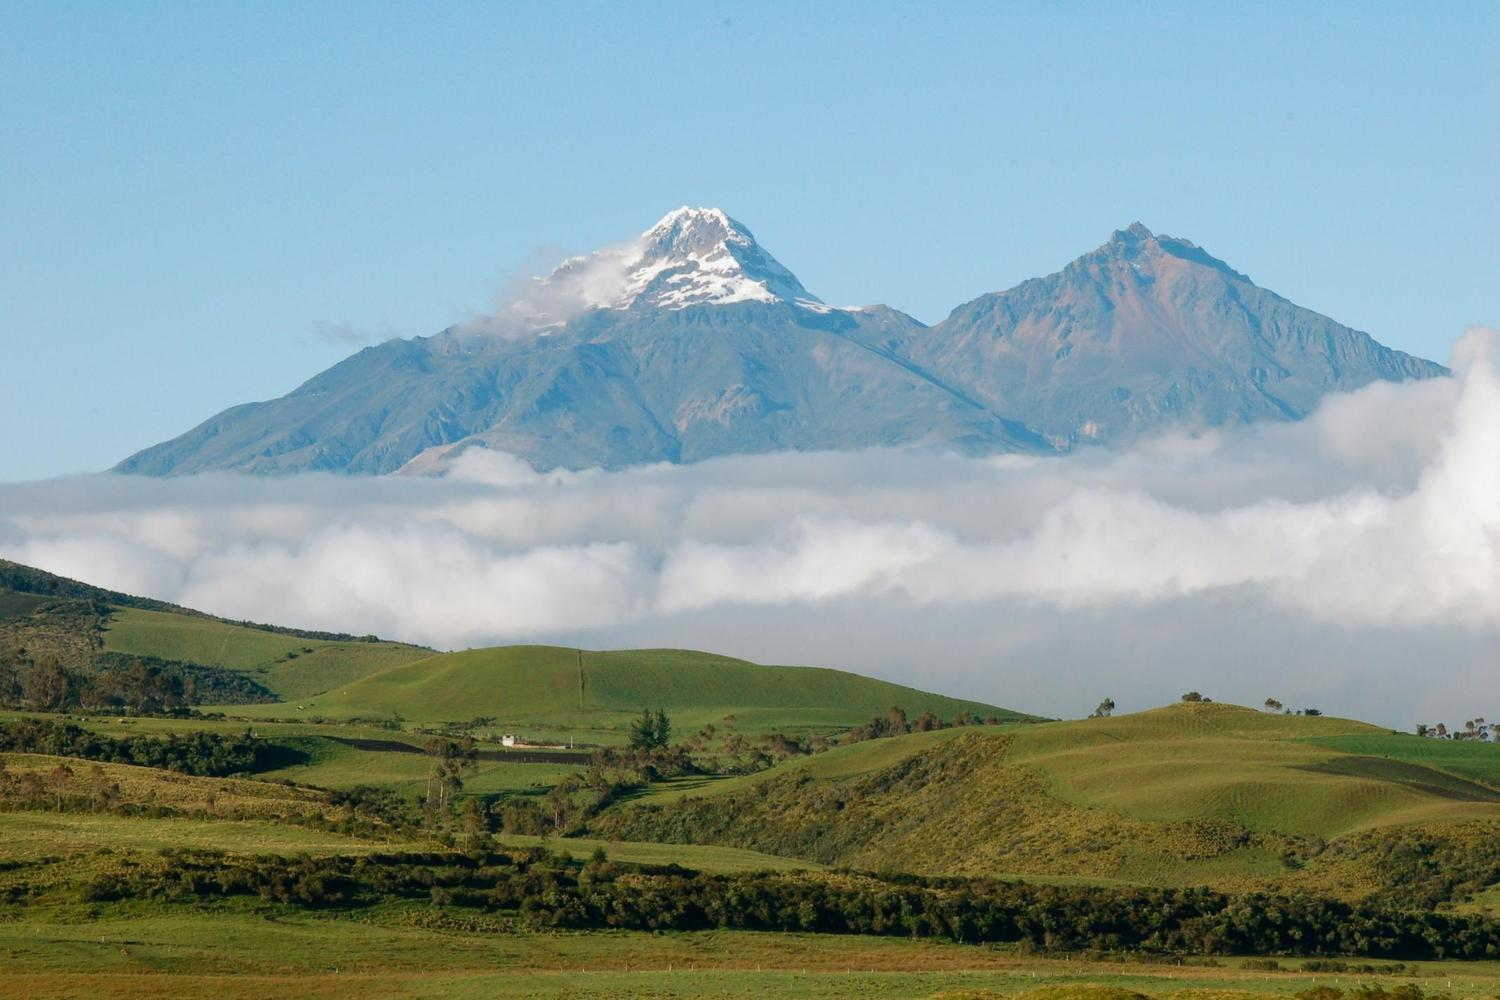 A rare clear day at Cotopaxi volcano, Ecuador